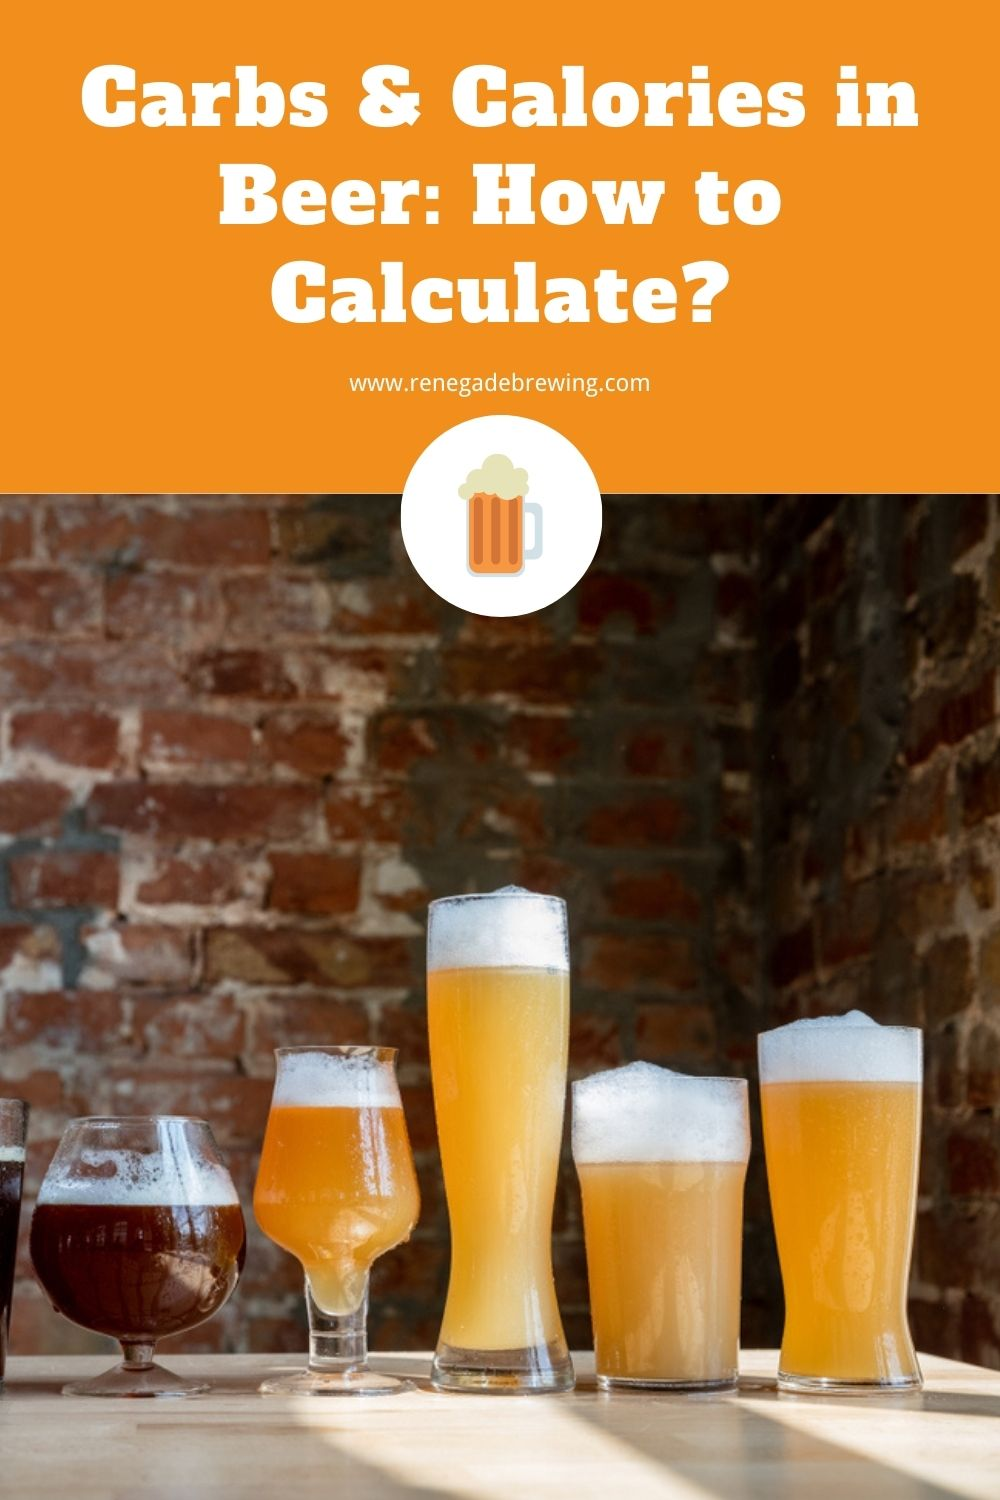 Carbs & Calories in Beer How to Calculate 1